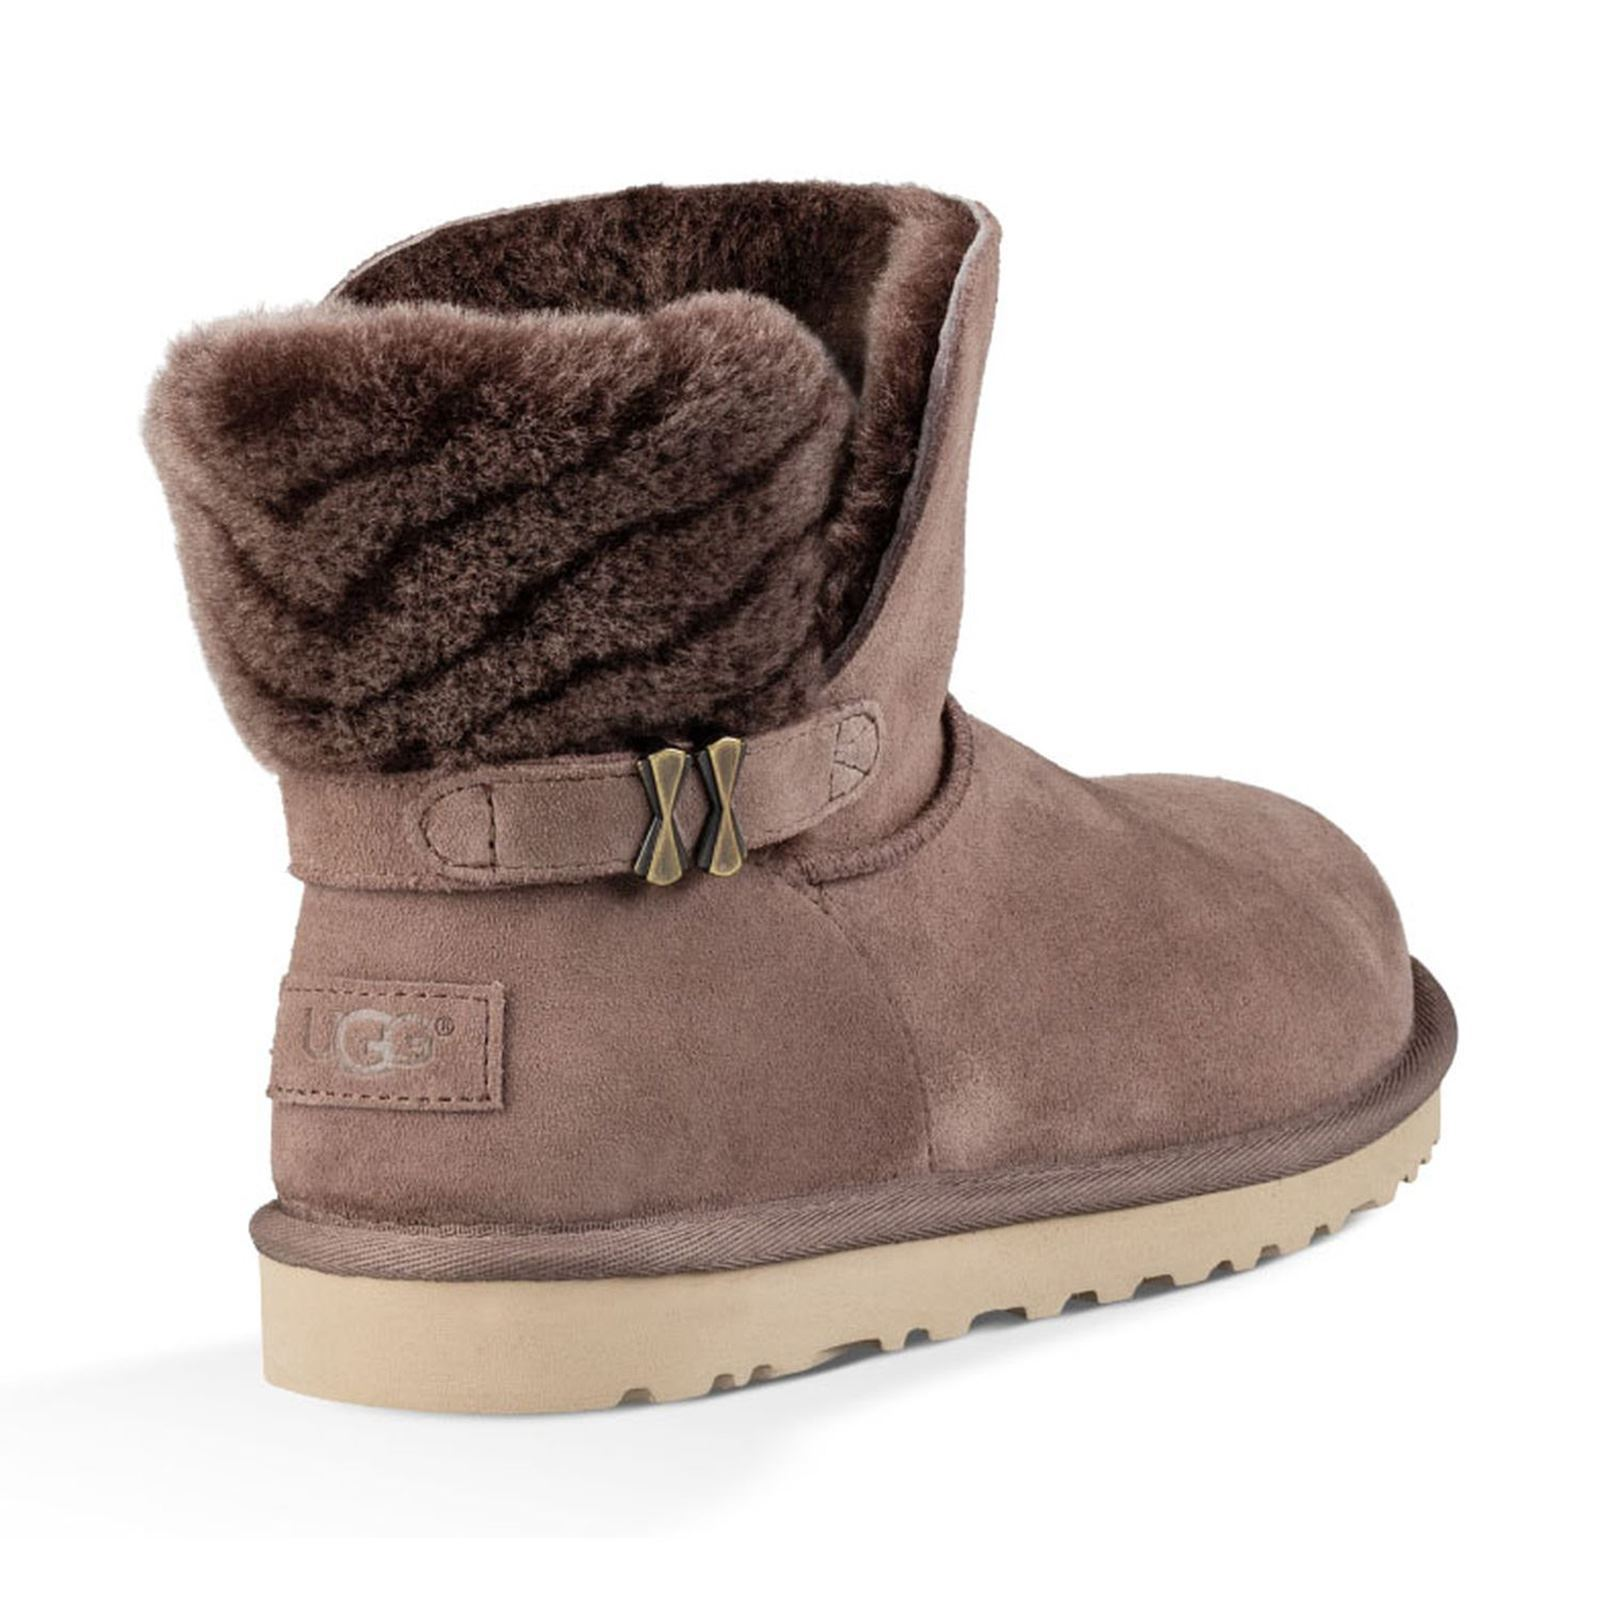 Ugg slippers deals